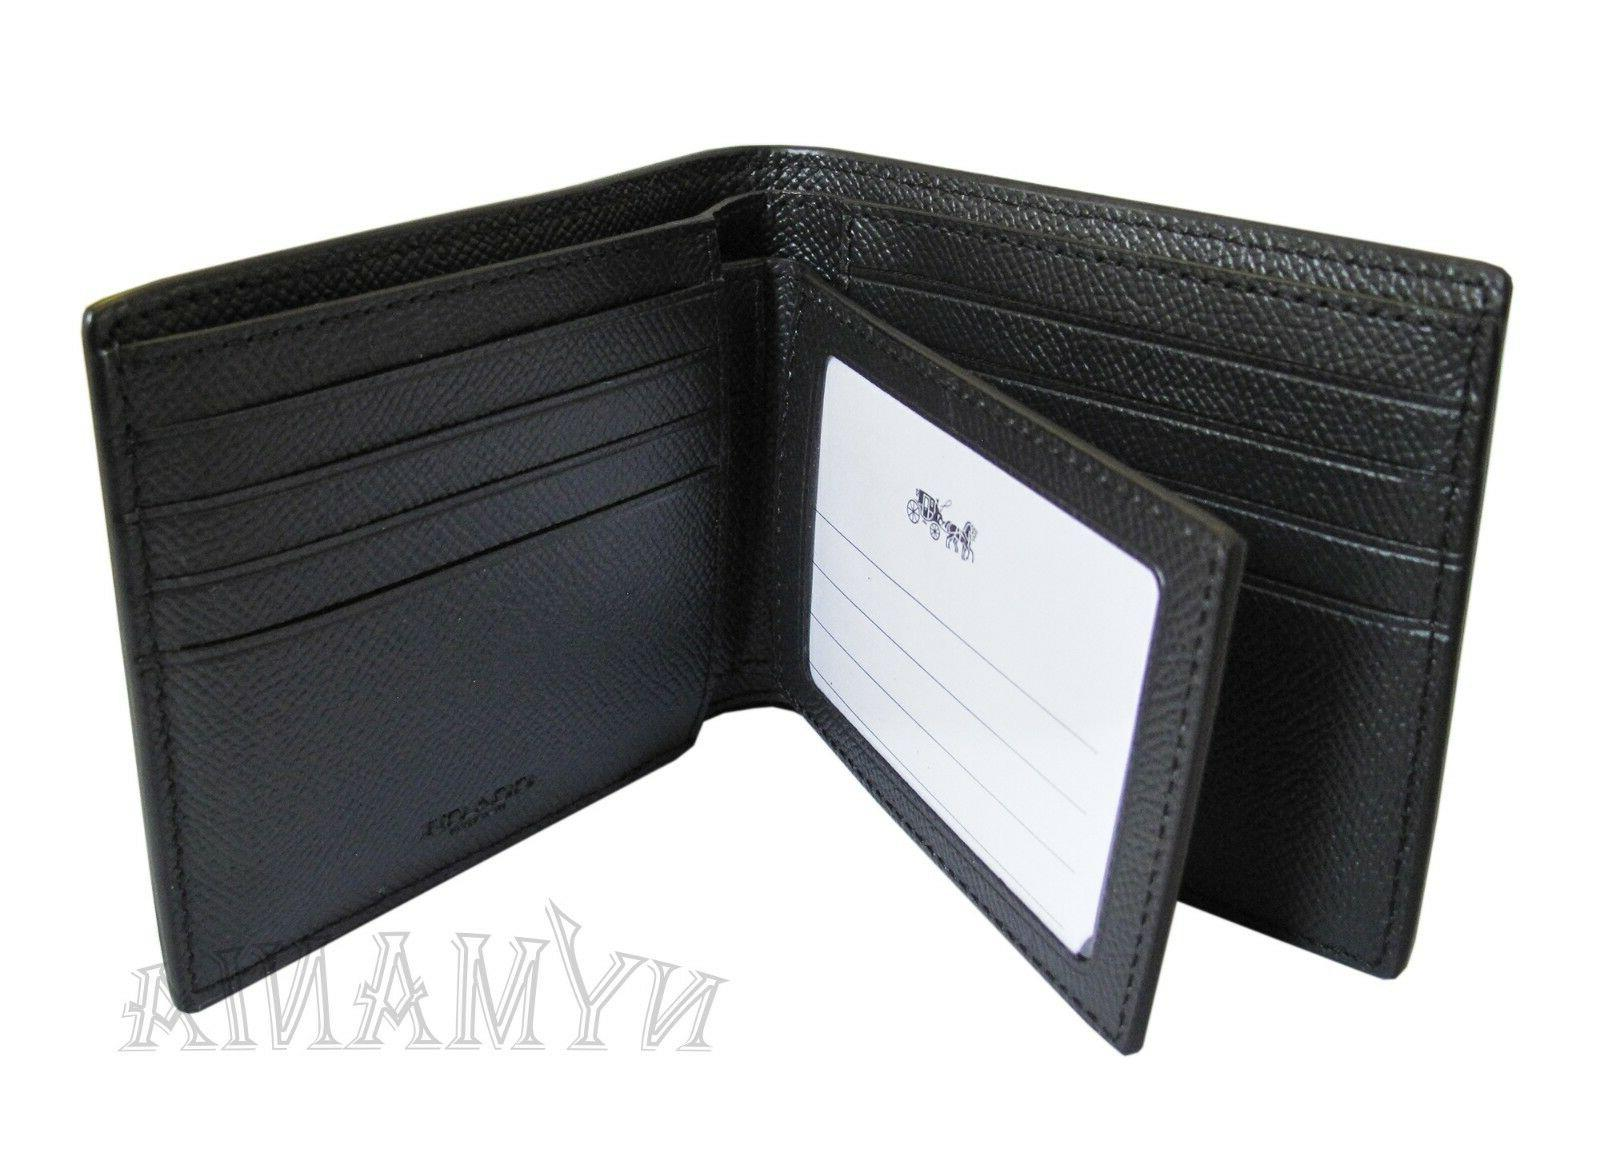 New F59112 Mens 3-IN-1 Compact ID Leather GIFT BOX